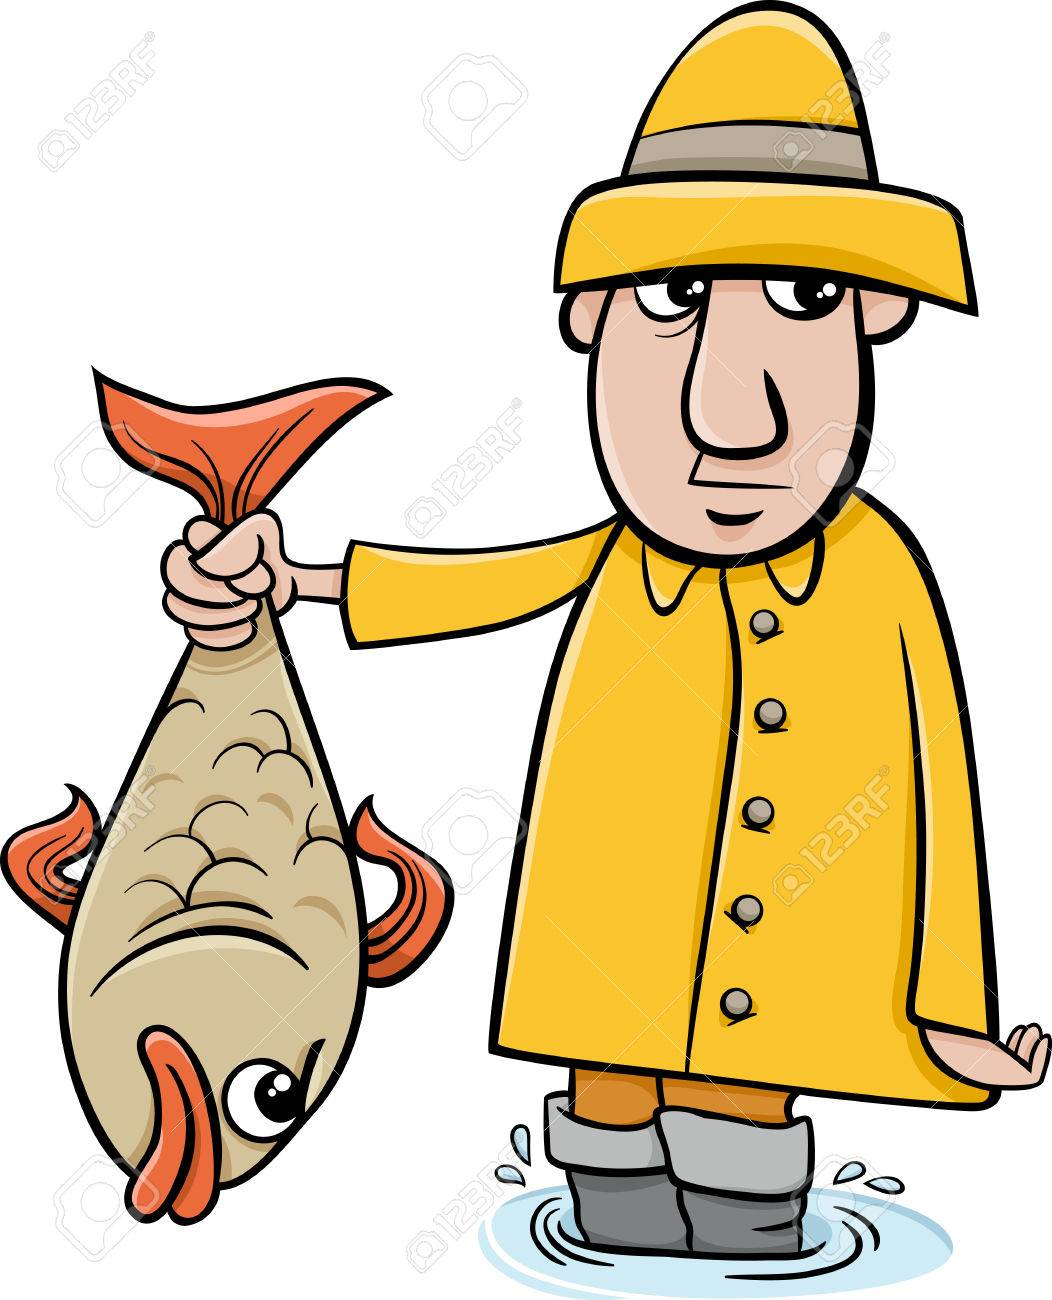 Cartoon Illustration of Angler or Fisherman with Big Fish.